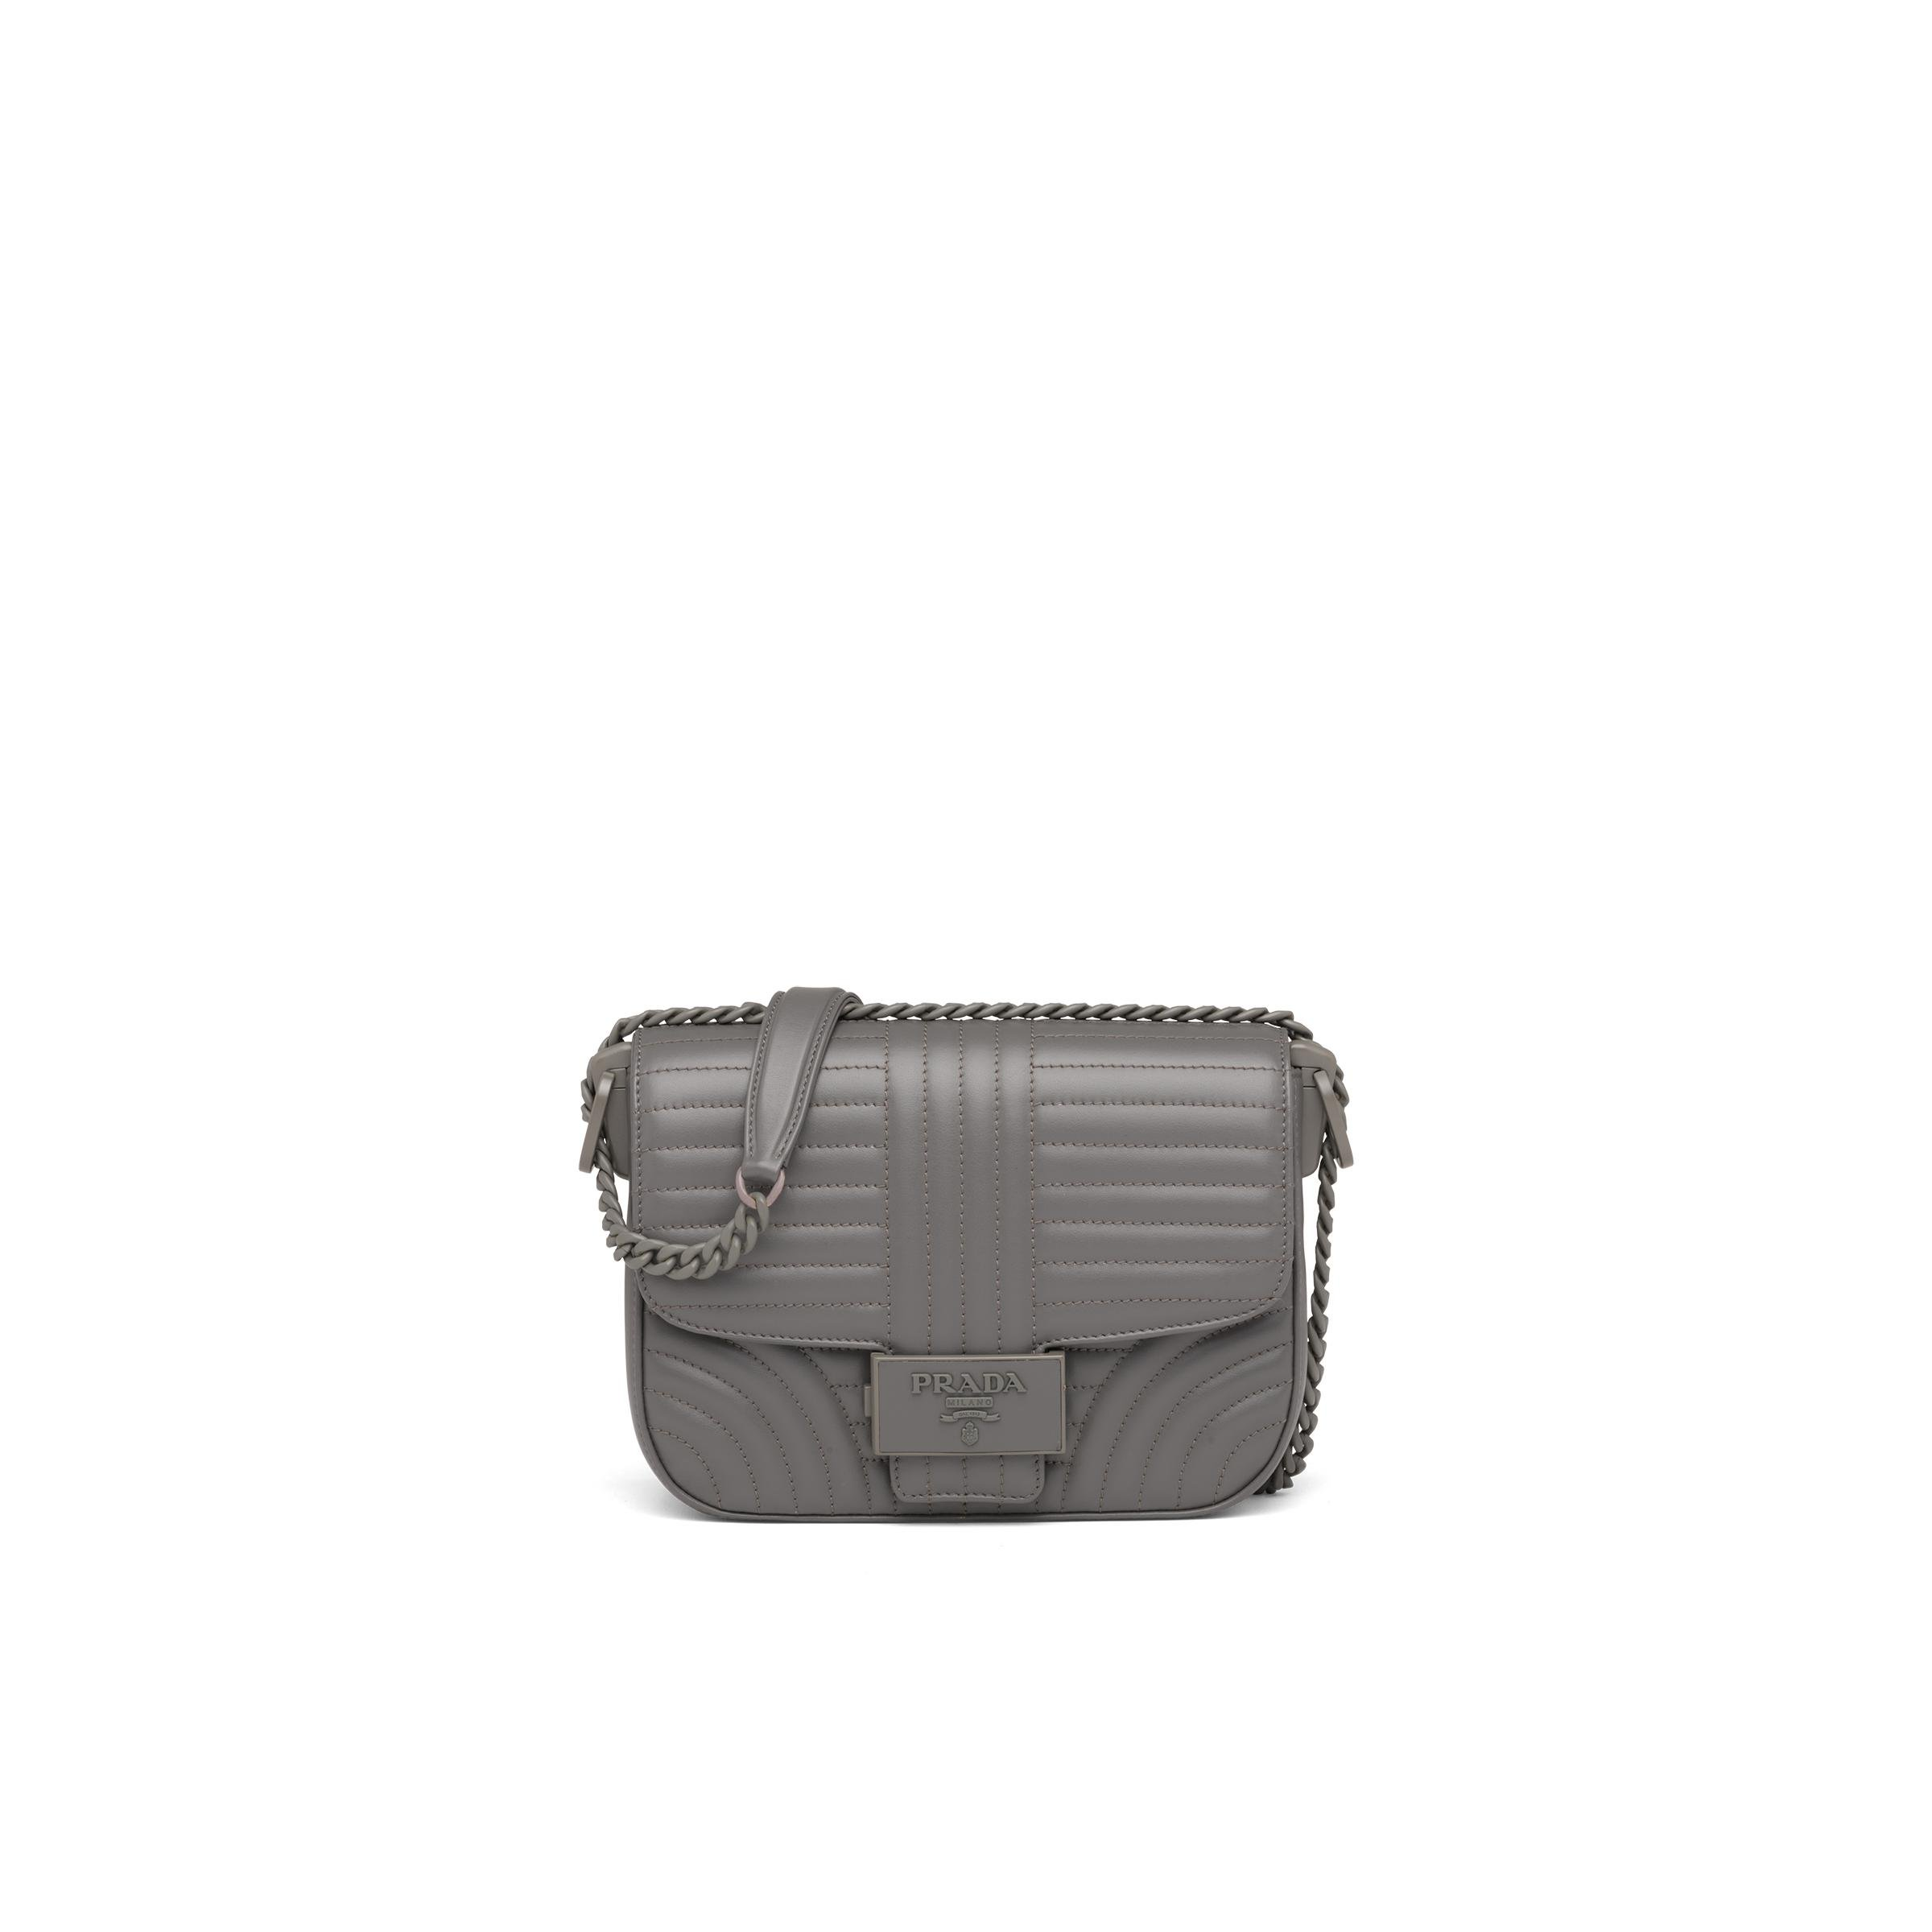 Diagramme Leather Shoulder Bag Women Marble Gray